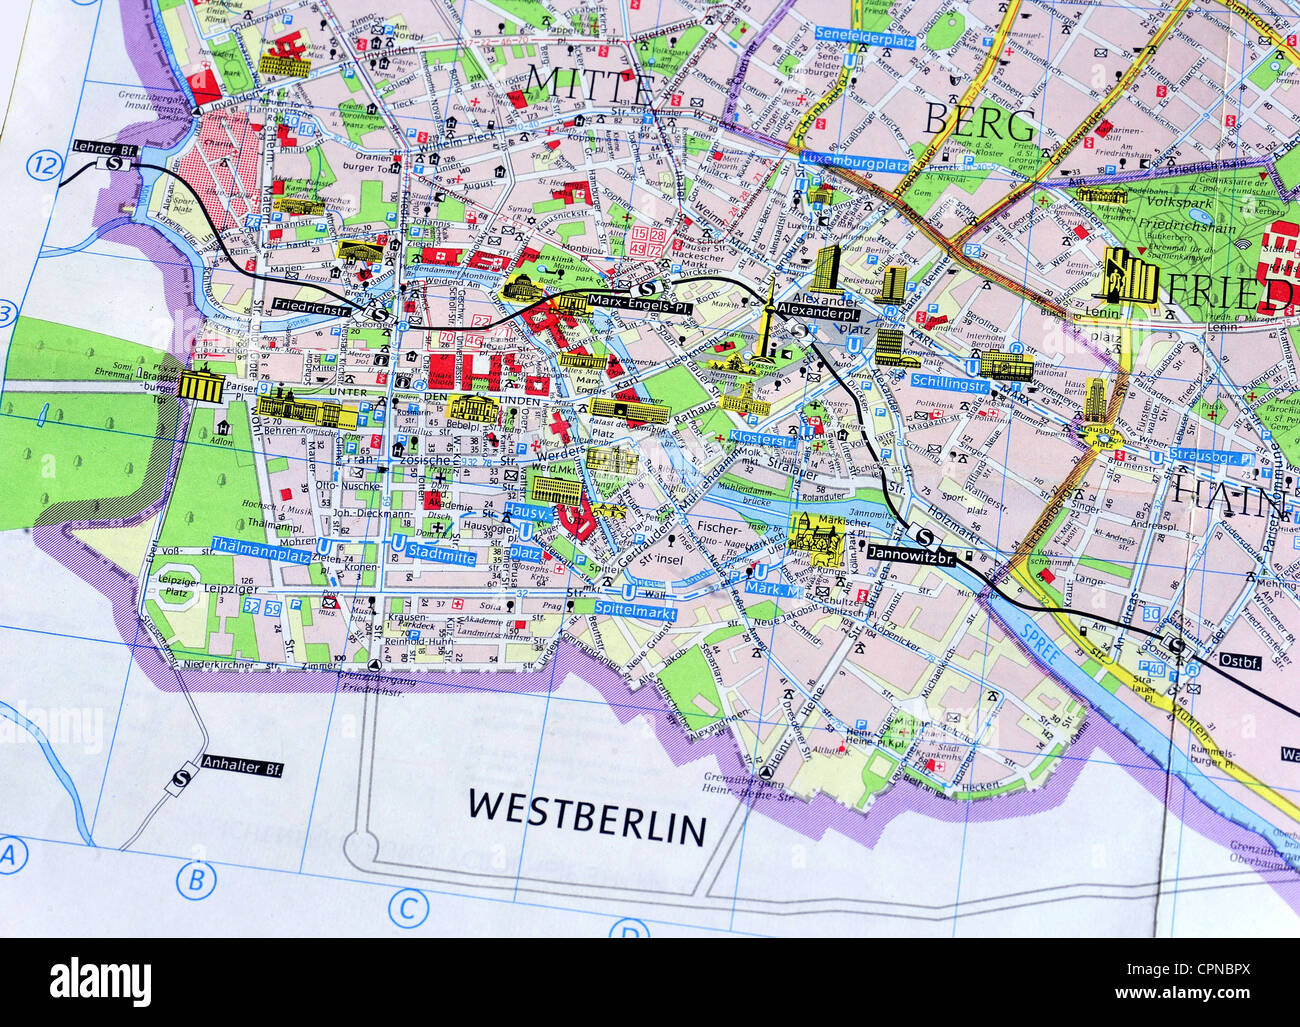 West Ost Berlin Karte.Berlin Karte Stockfotos Berlin Karte Bilder Alamy